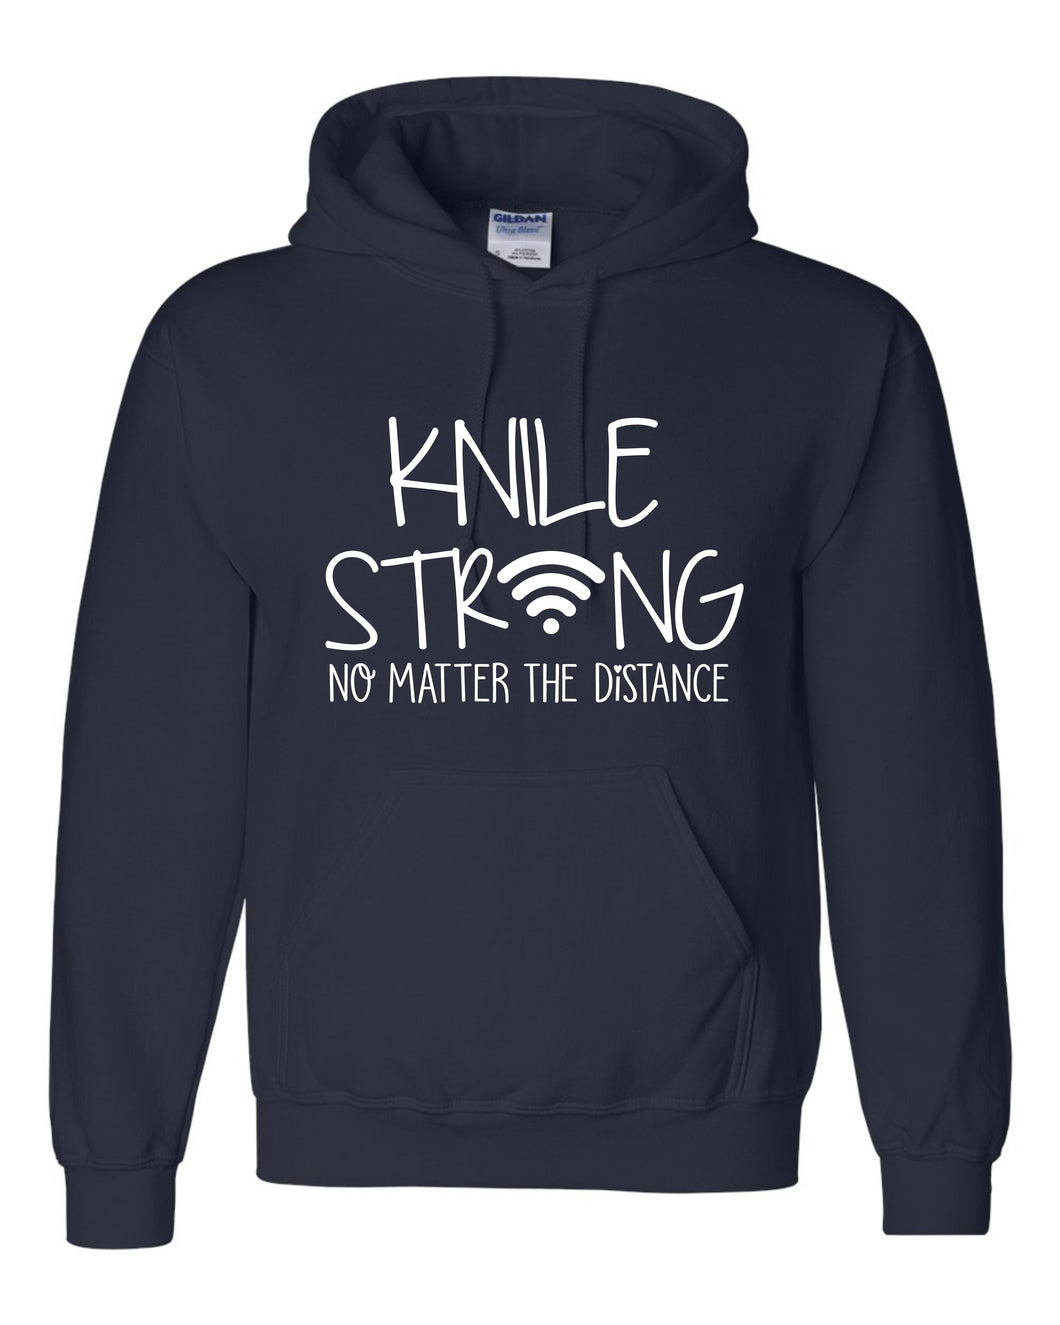 KNILE STRONG HOODIE & T-SHIRT